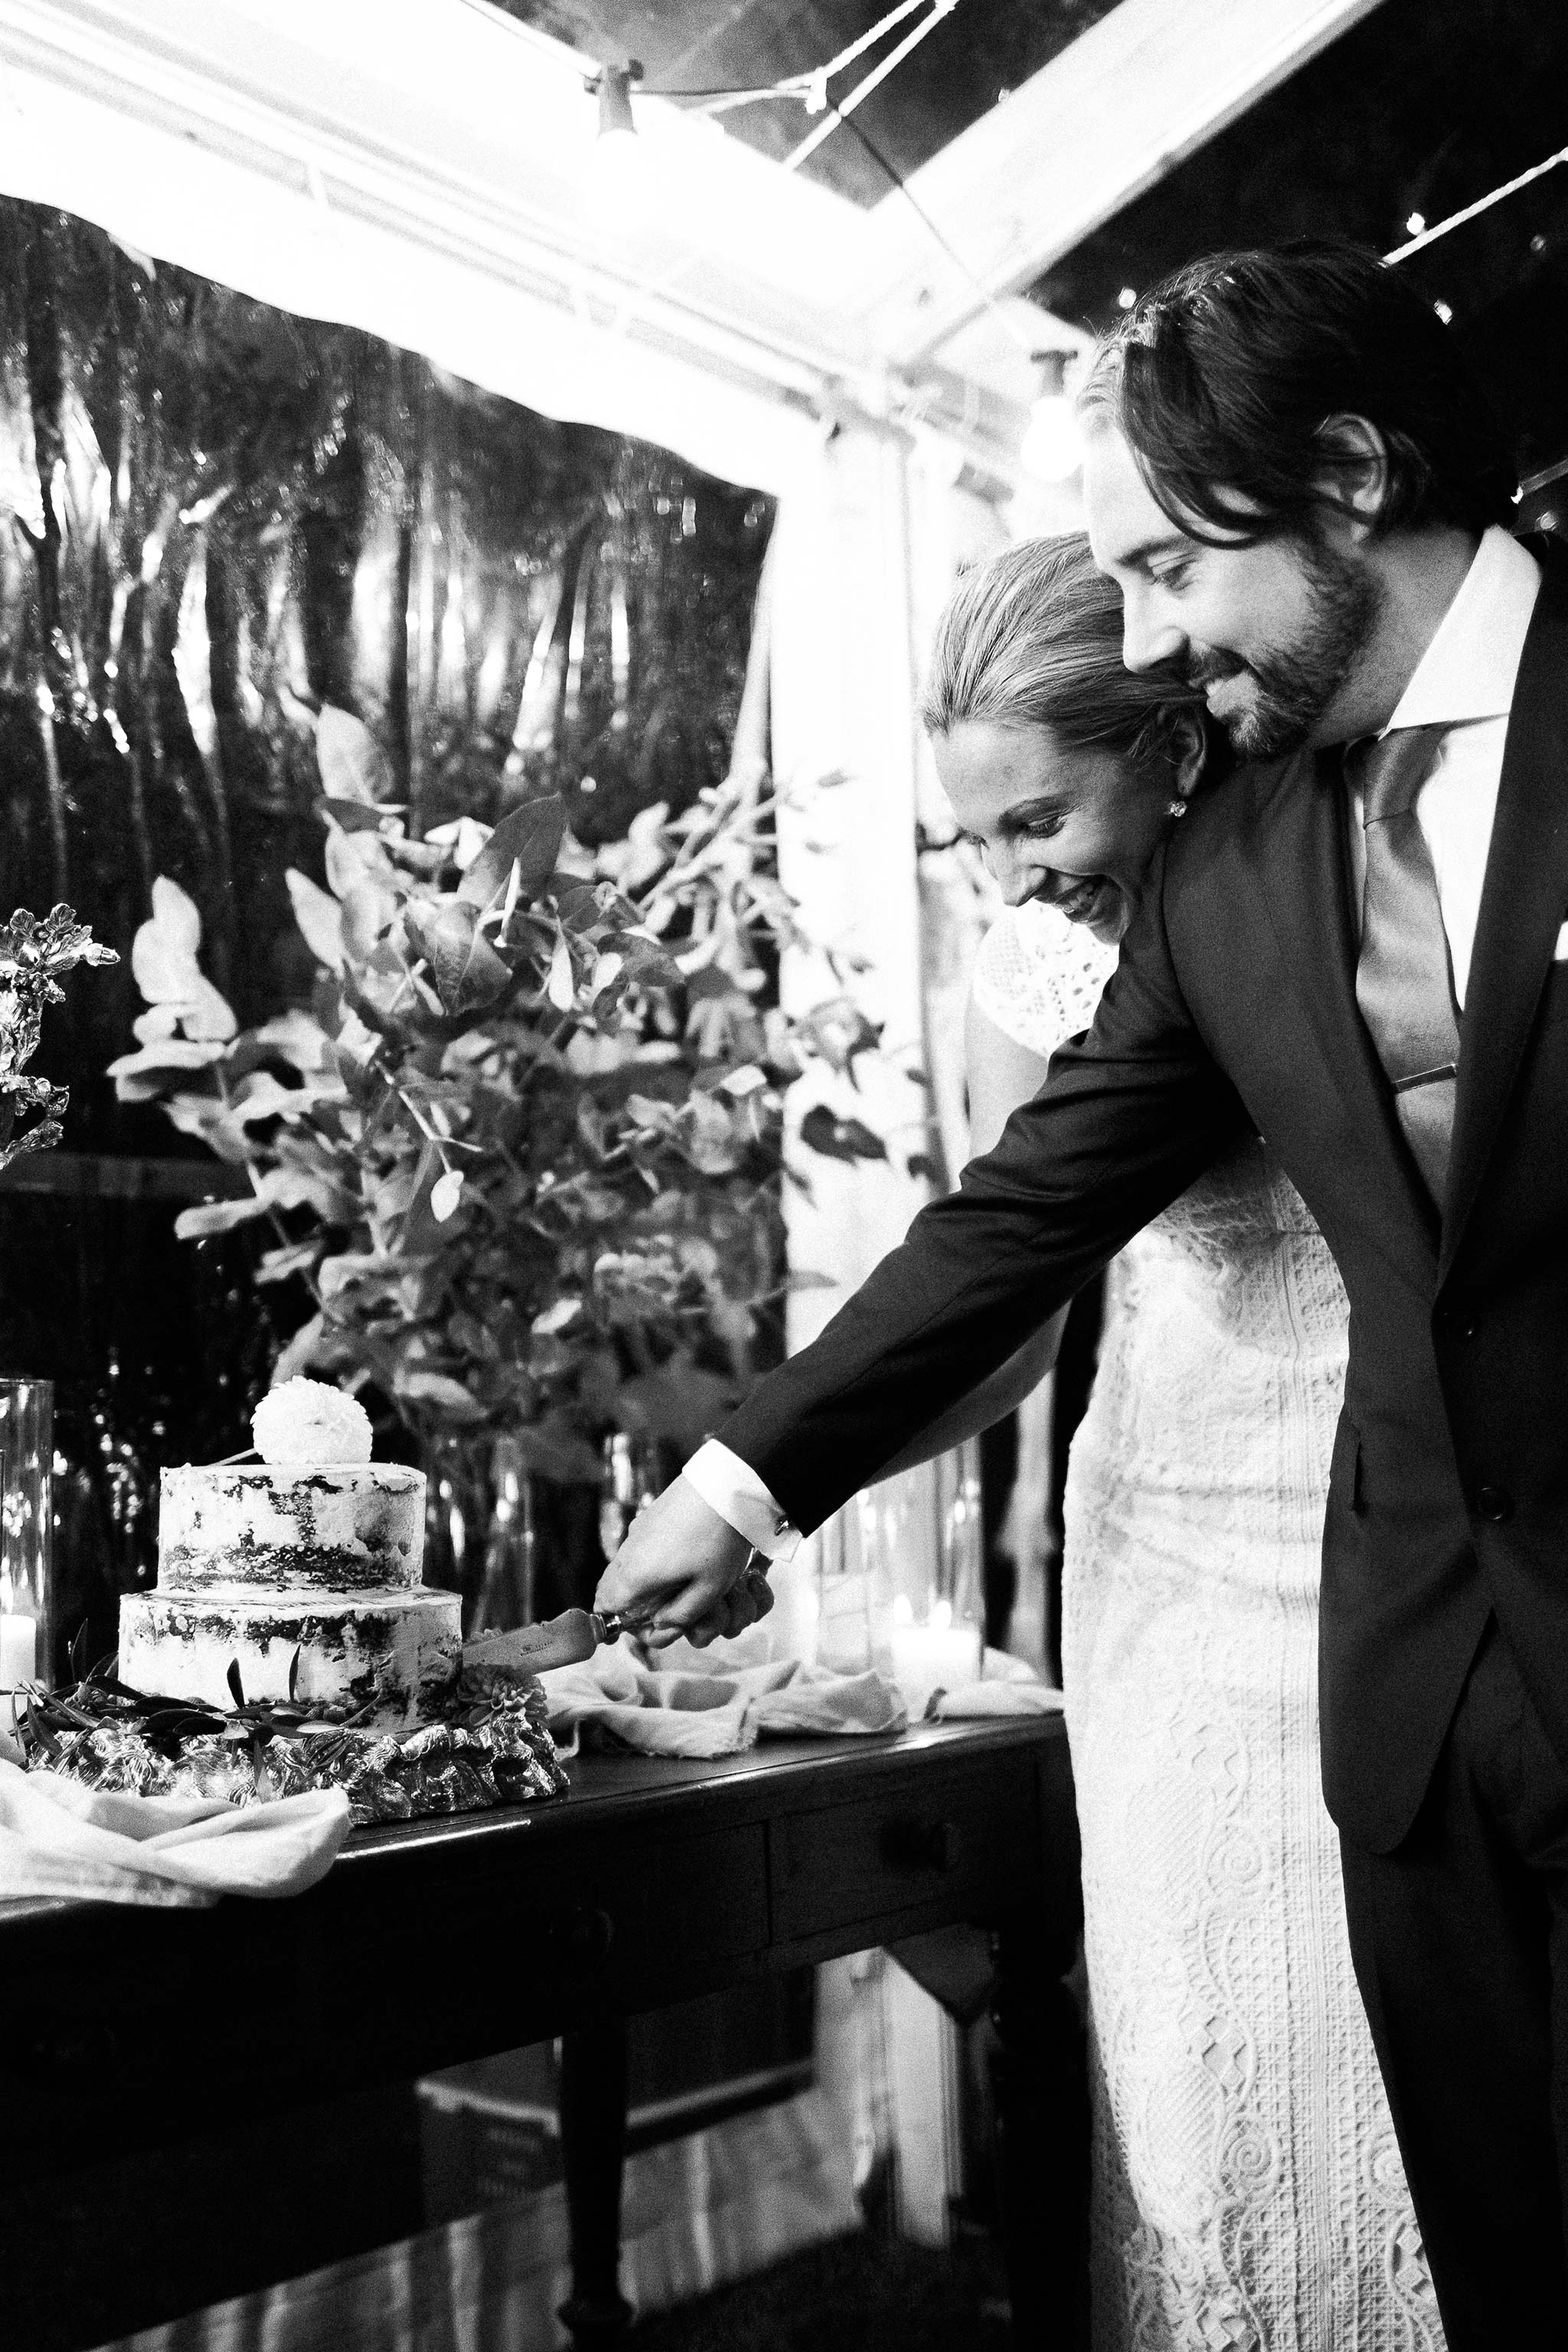 Tasmania-Davenport-Farm-Wedding-cake-cutting